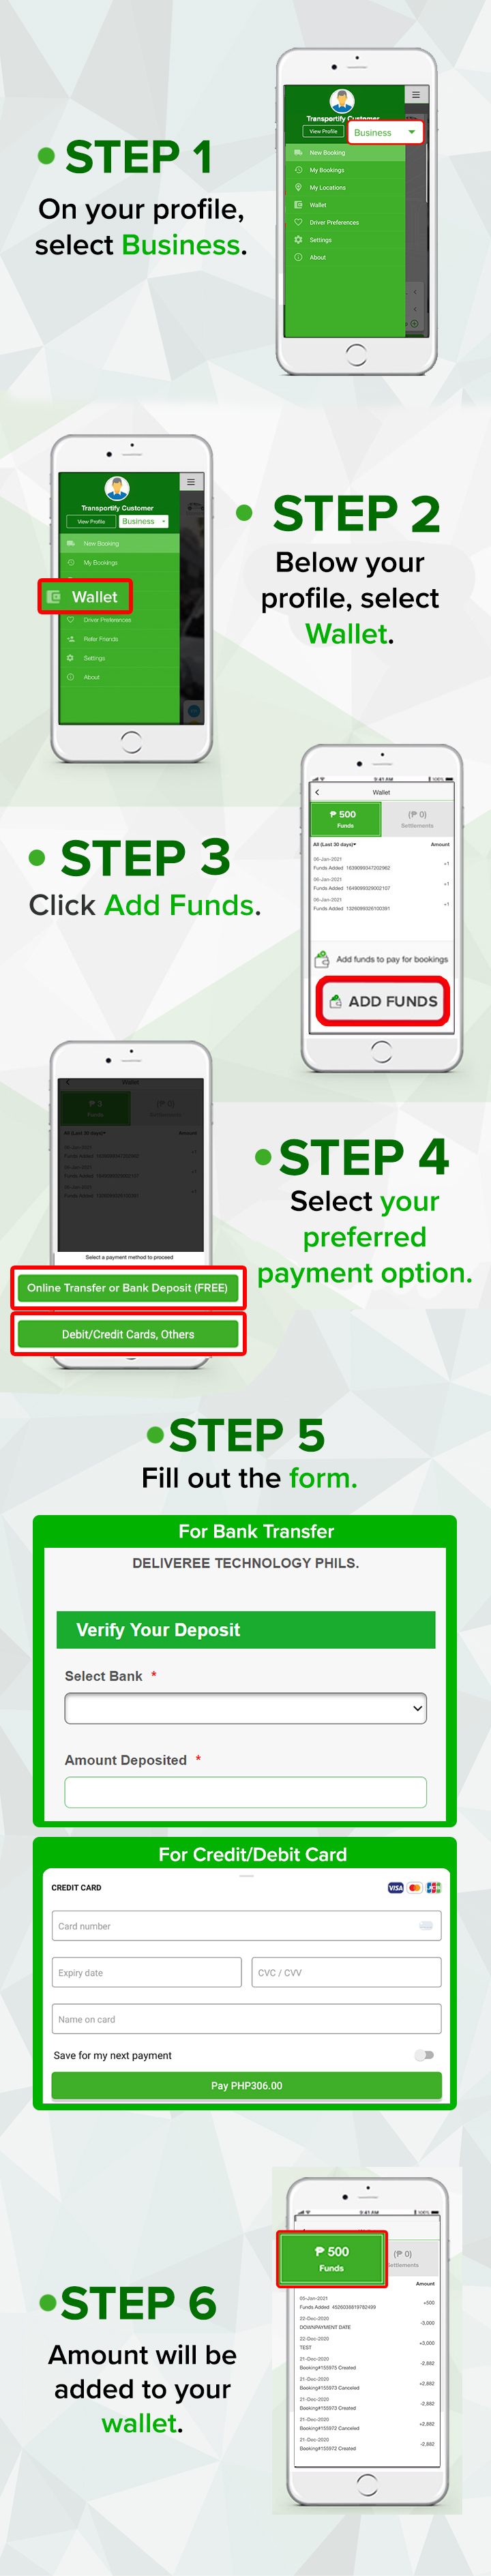 Add Funds to your BP Account - Mobile